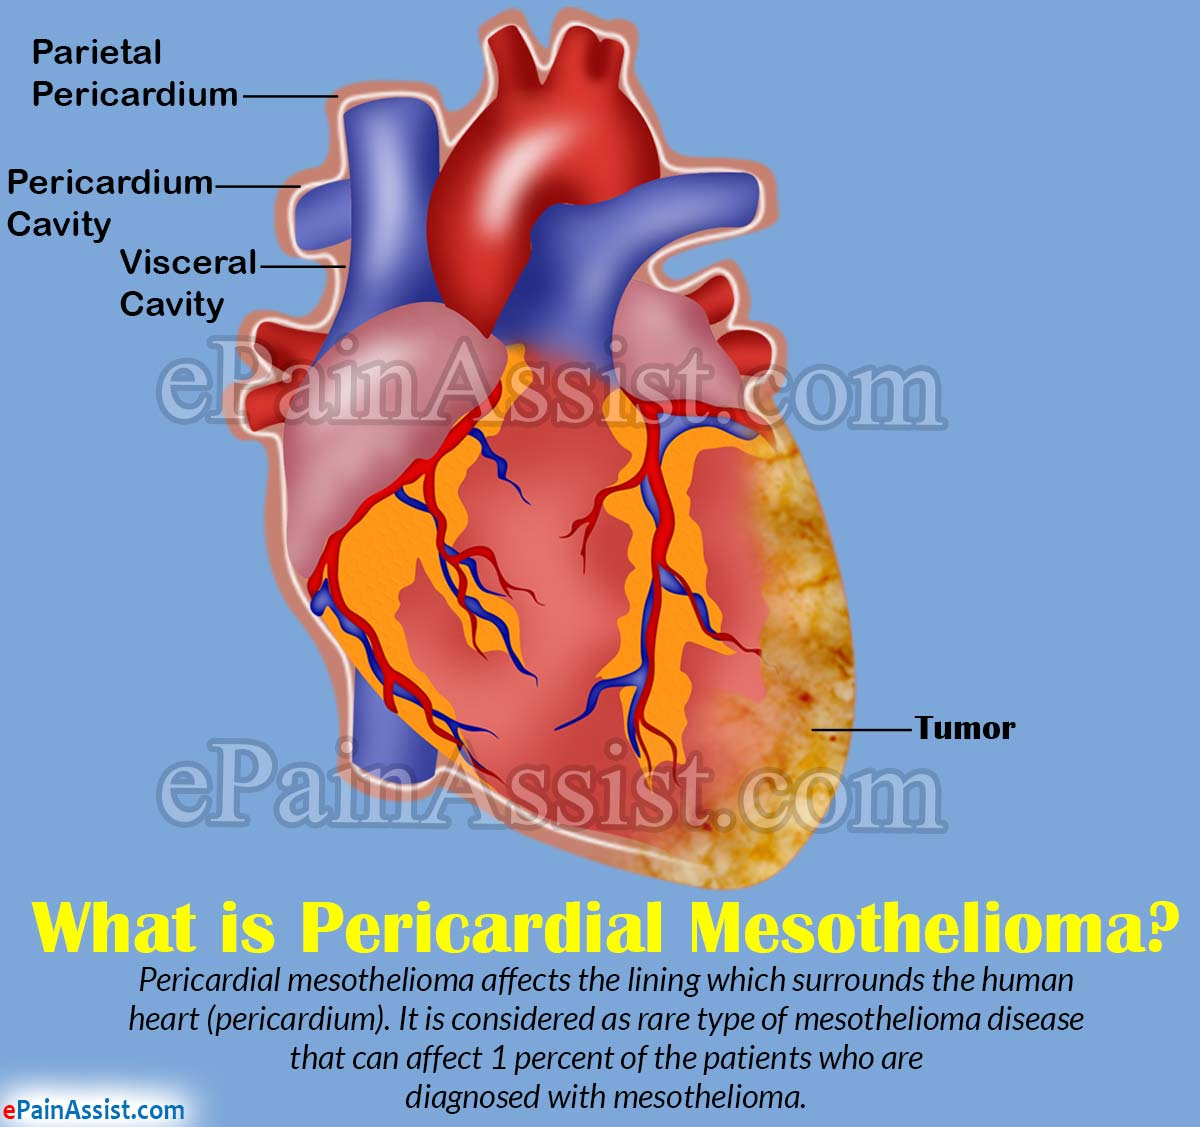 What is Pericardial Mesothelioma?